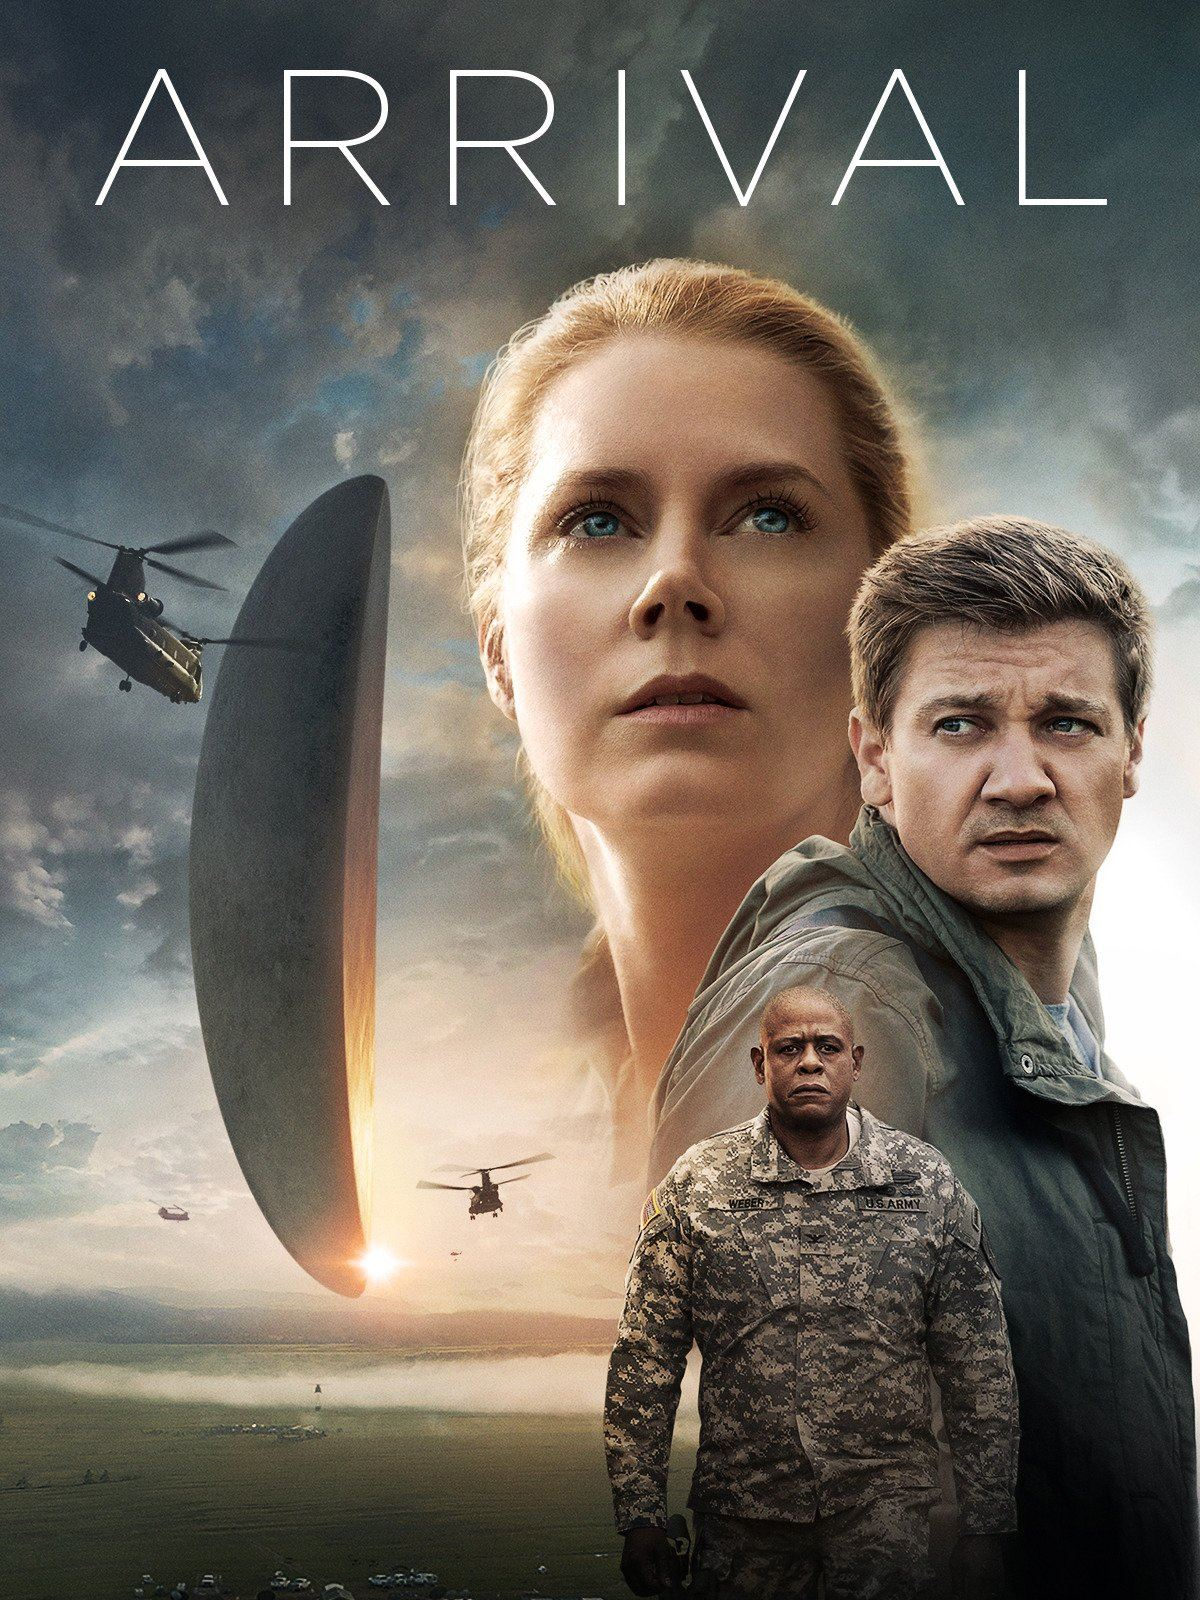 Image of the DVD cover of the movie Arrival showing woman and two men and strange spacecraft